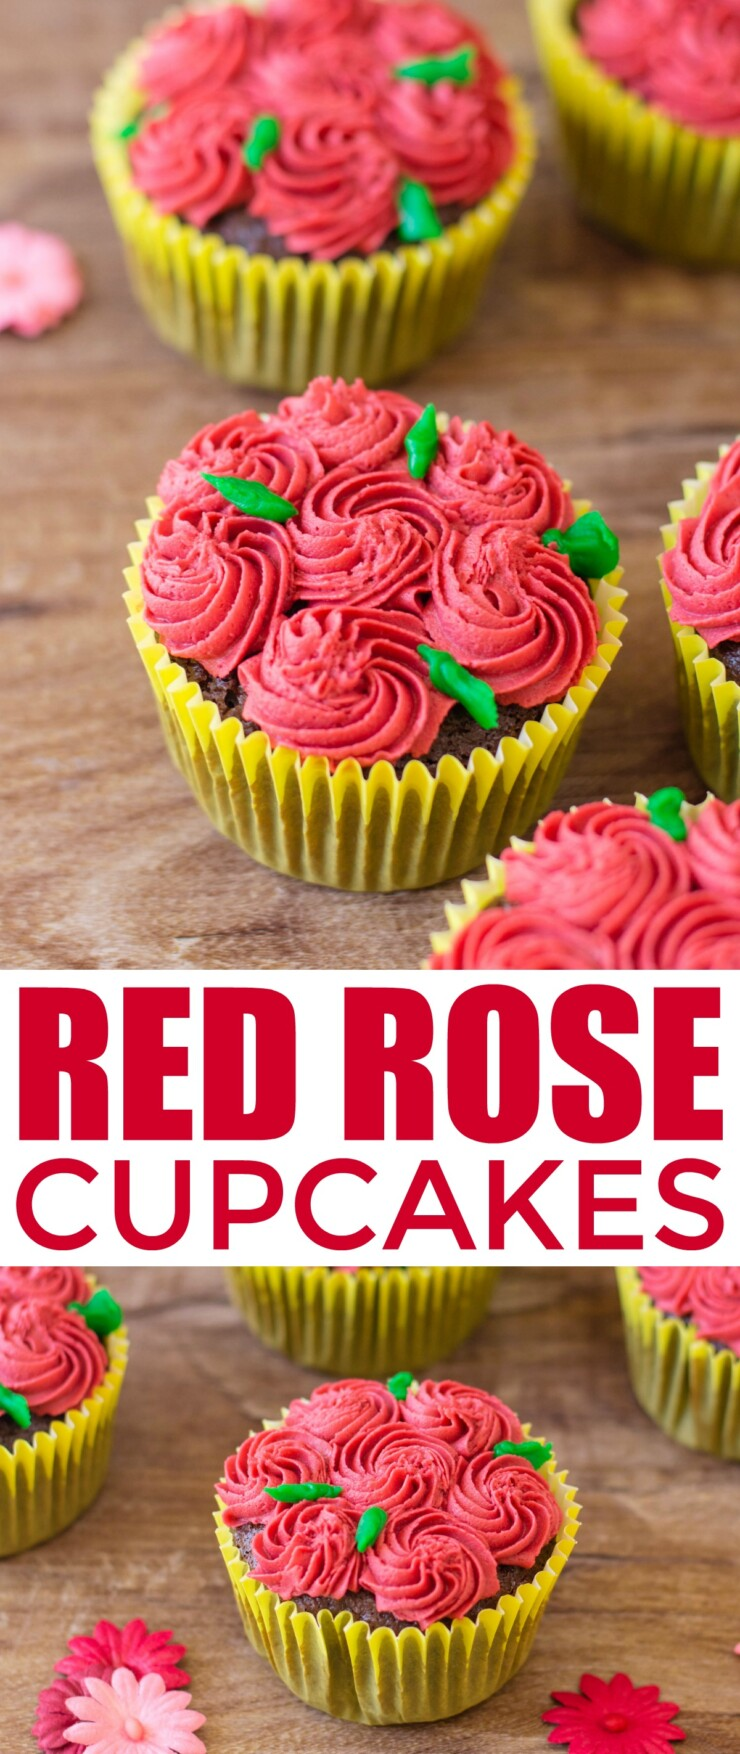 These Red Rose Cupcakes are a sweet treat perfect for garden parties, valentines day or just to show someone you care.